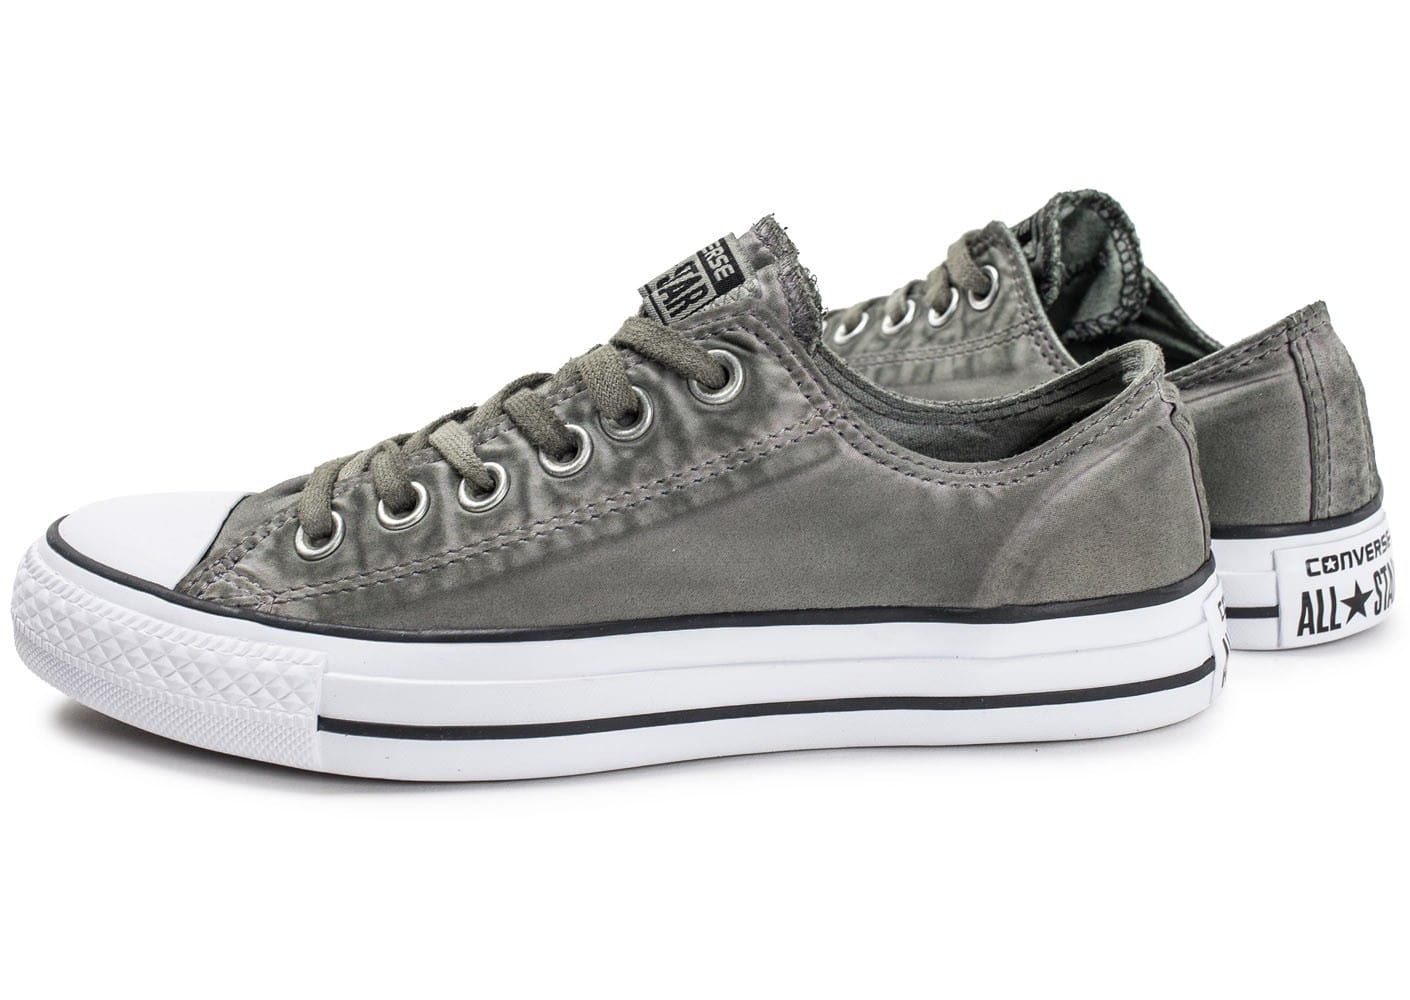 Converse Chuck Taylor All Star OX Low kaki Chaussures